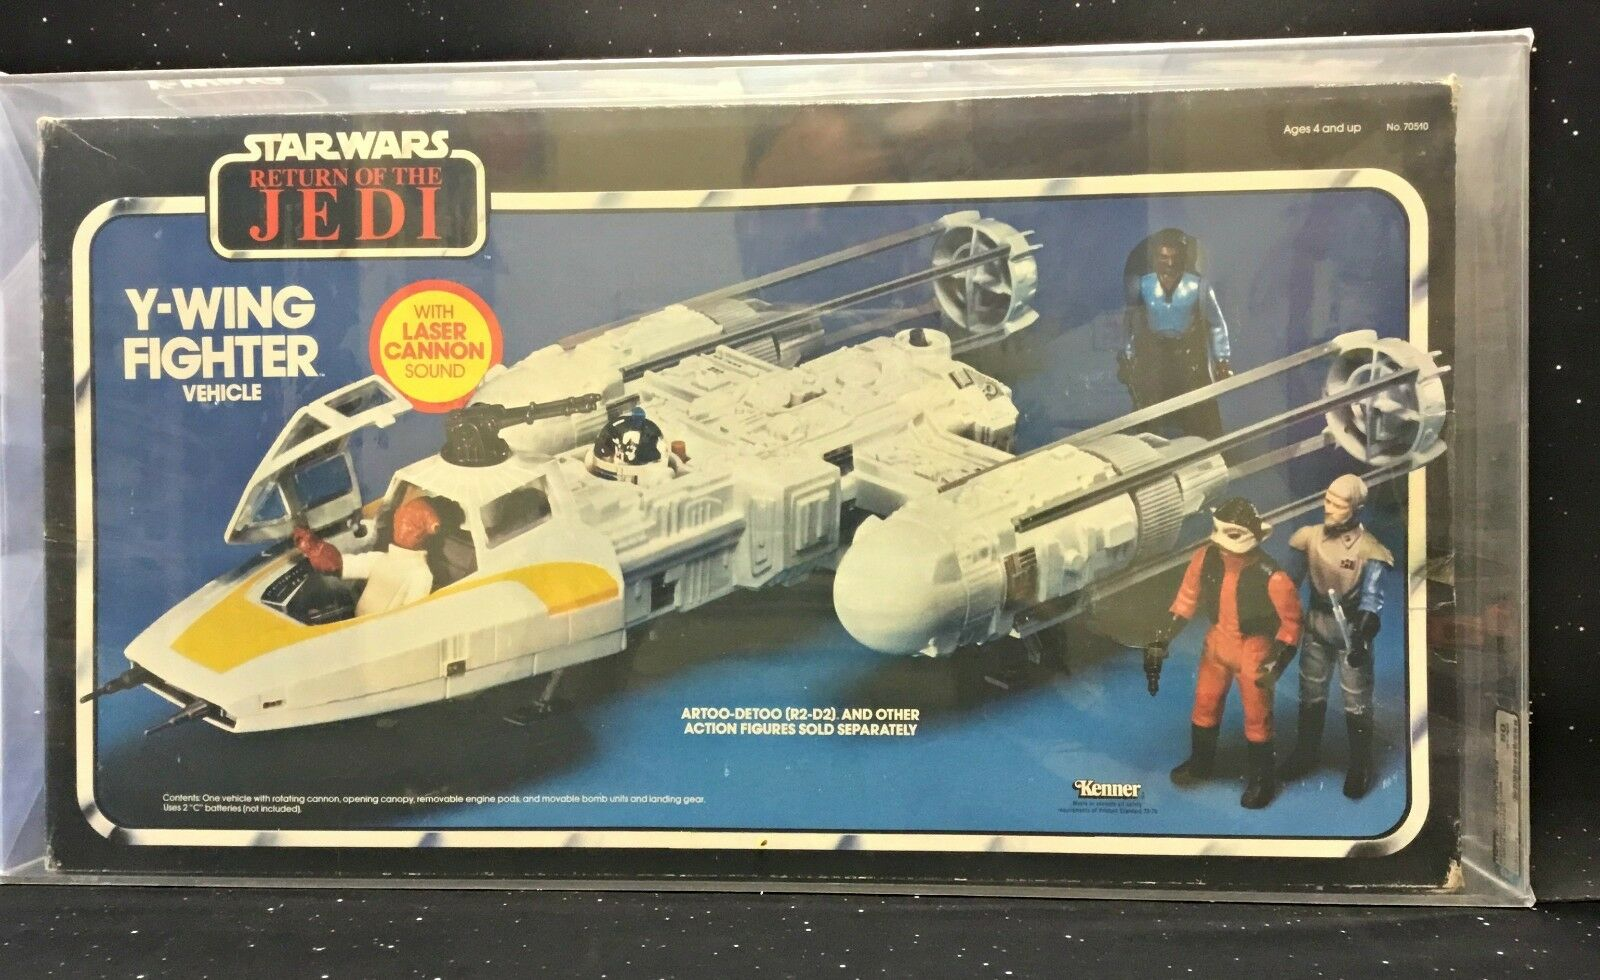 1983 Kenner Star Wars Return of the Jedi Y-Wing Fighter AFA QY-80